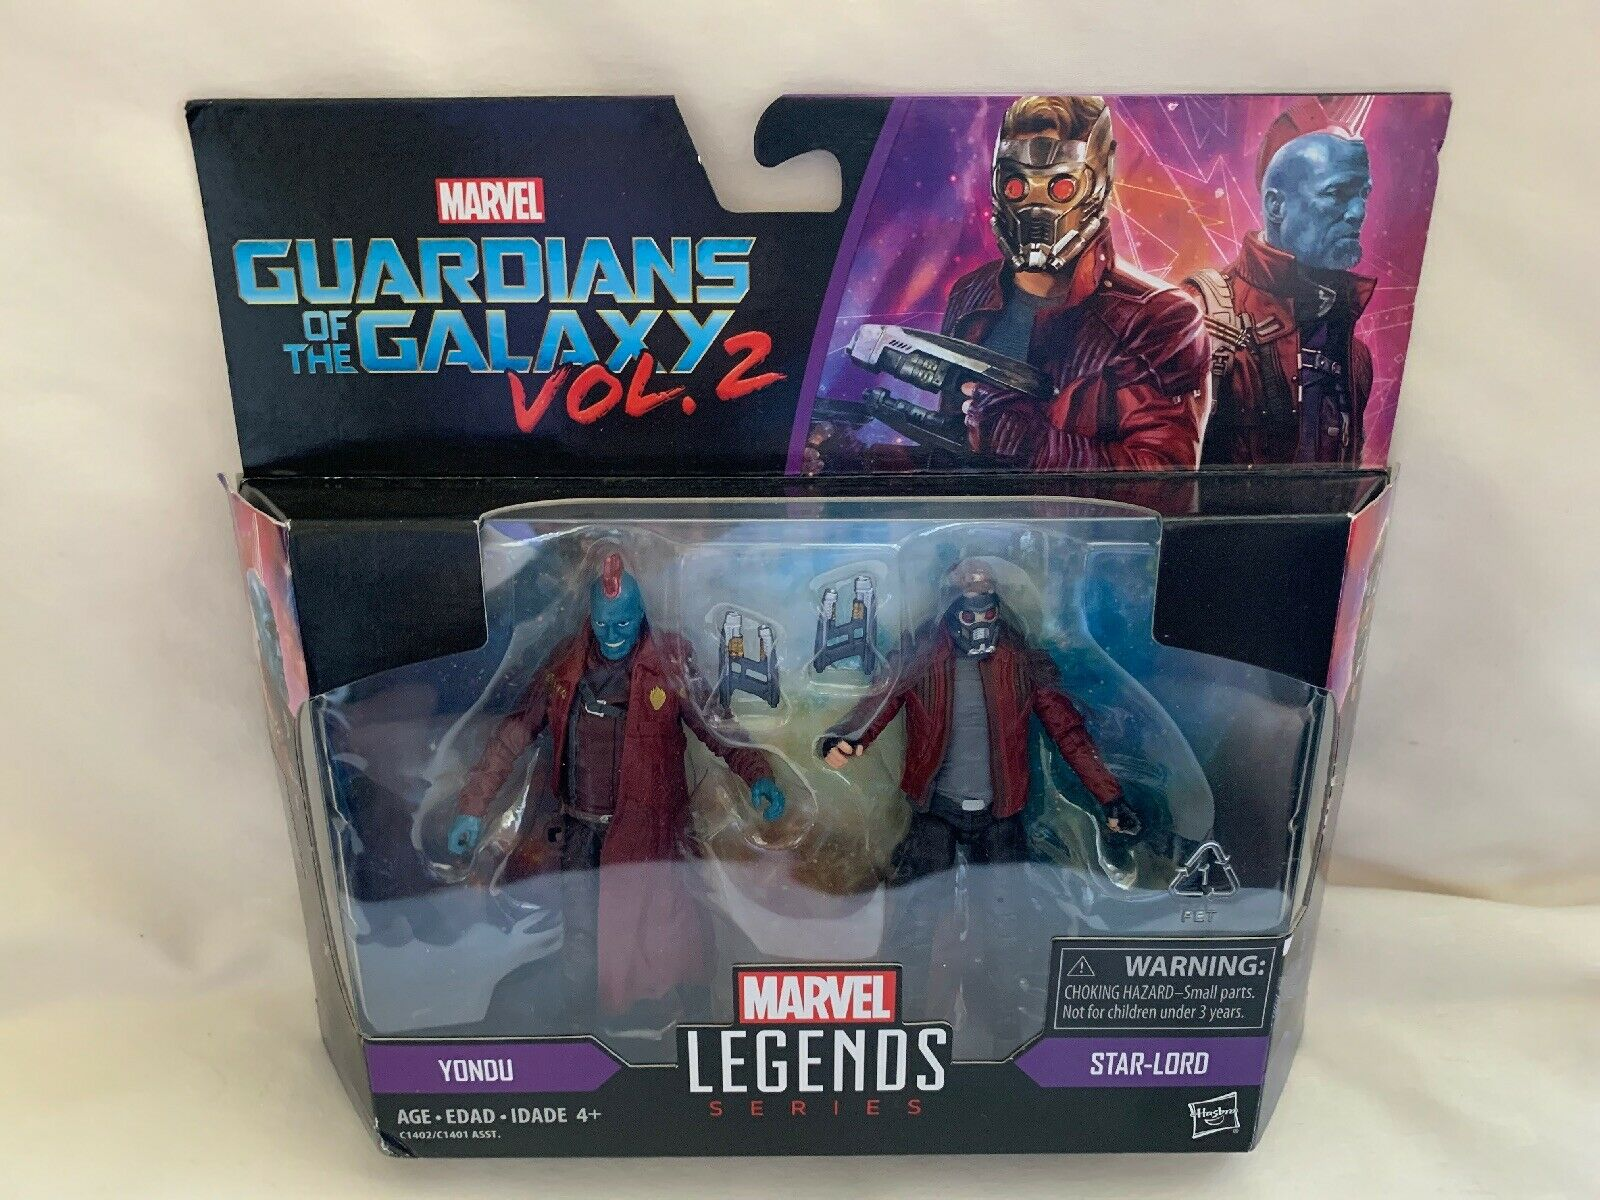 Marvel Legends Series Guardians Of The Galaxy Vol. 2 2 2 Yondu And Star-Lord Set a1fc5c